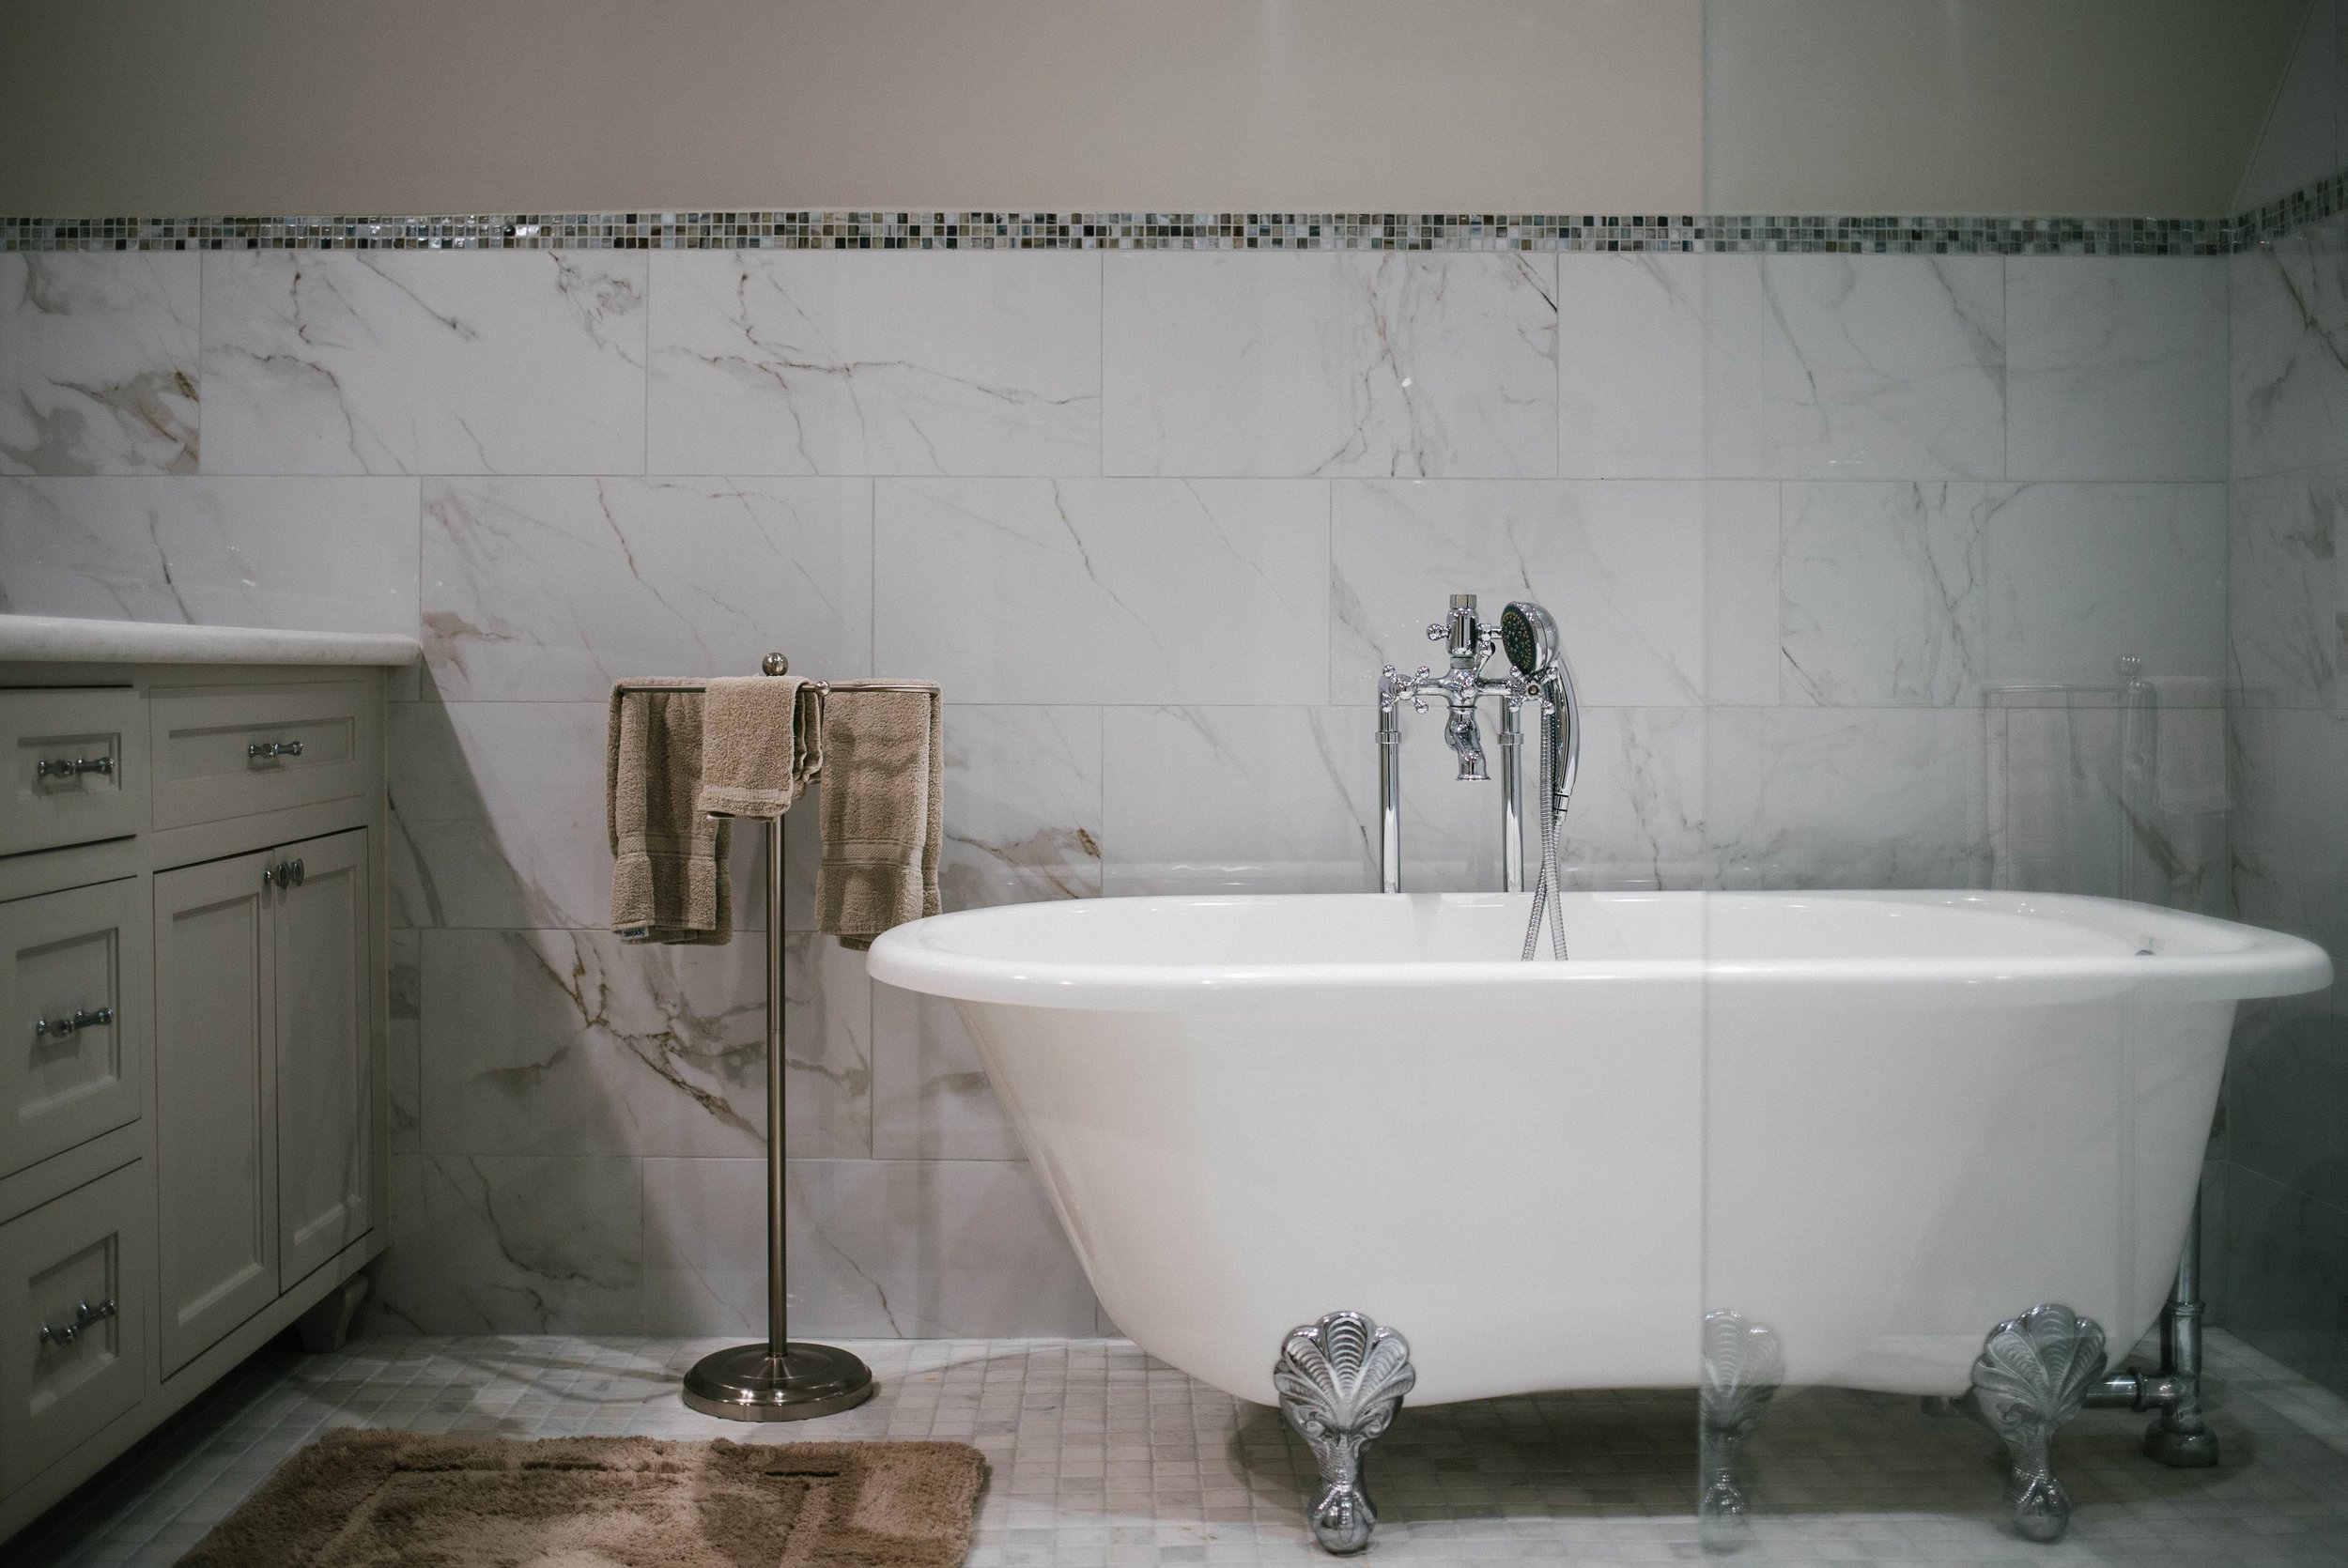 Bathroom, bathtub, tile, grey bathroom, clawfoot tub, frameless shower, walk in shower, kitchen renovation, remodeling, finished project, project, standing bathtub, bathroom renovation, bathroom remodel, cabinets, walk in shower